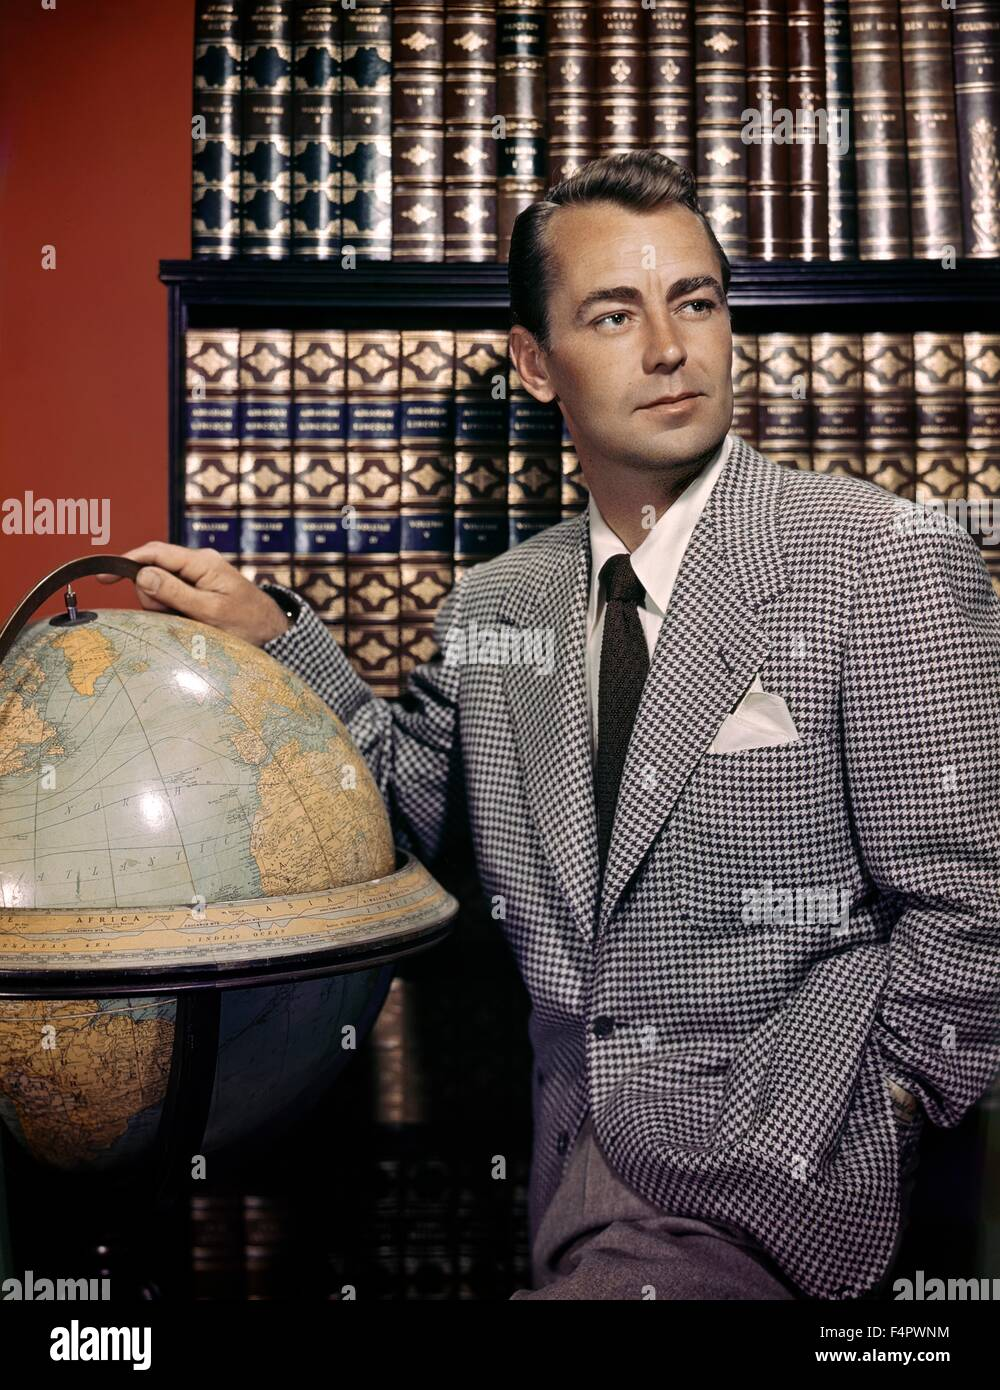 Alan Ladd in the 50's - Stock Image